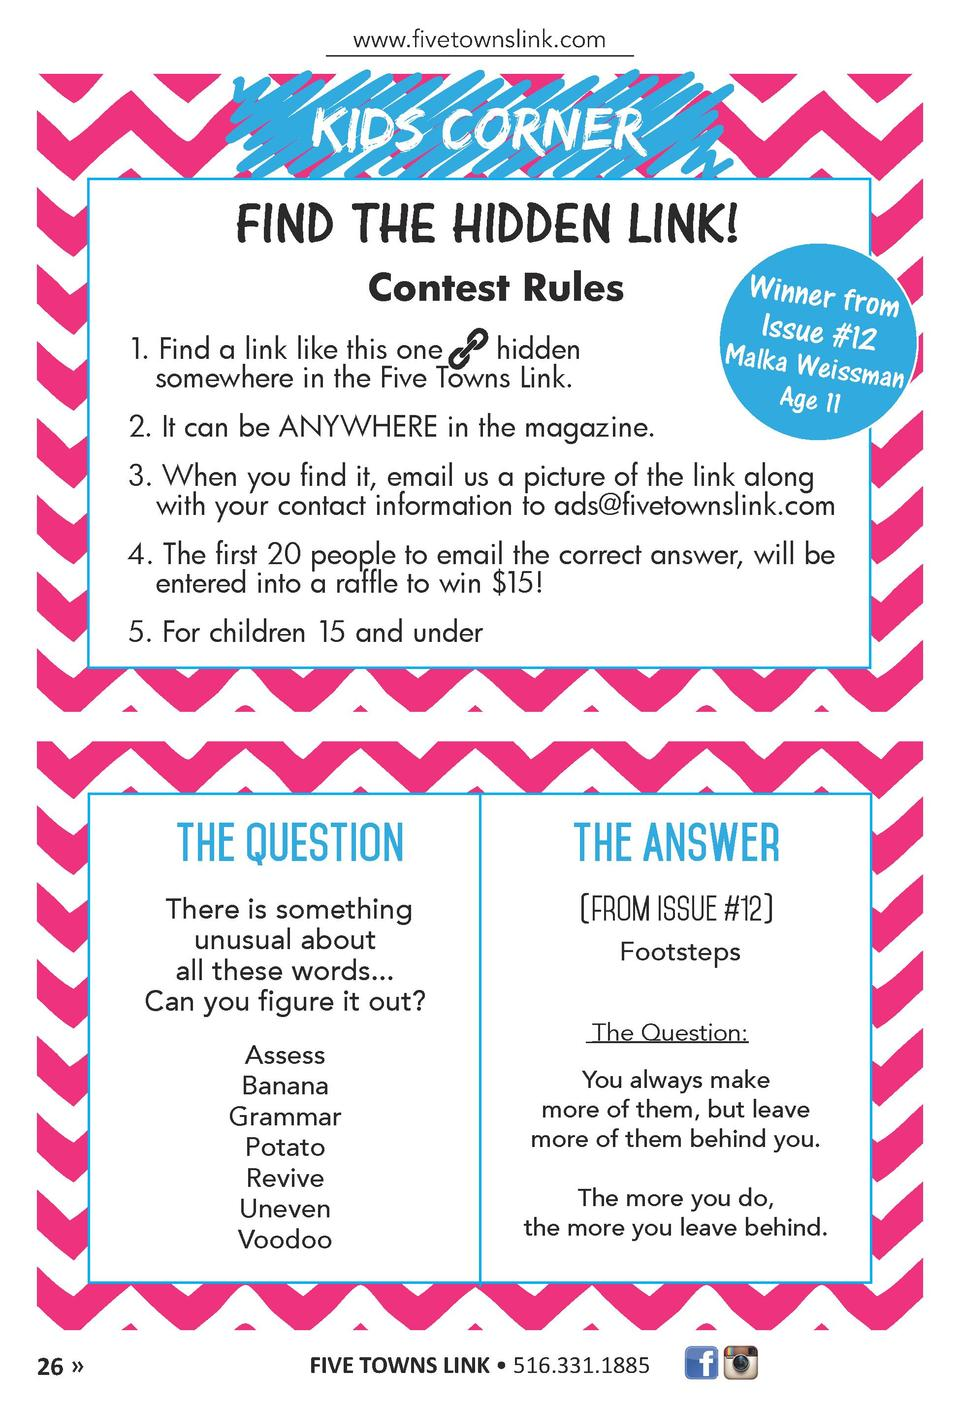 www.fivetownslink.com  KIDS CORNER FIND THE HIDDEN LINK  Contest Rules 1. Find a link like this one hidden somewhere in th...